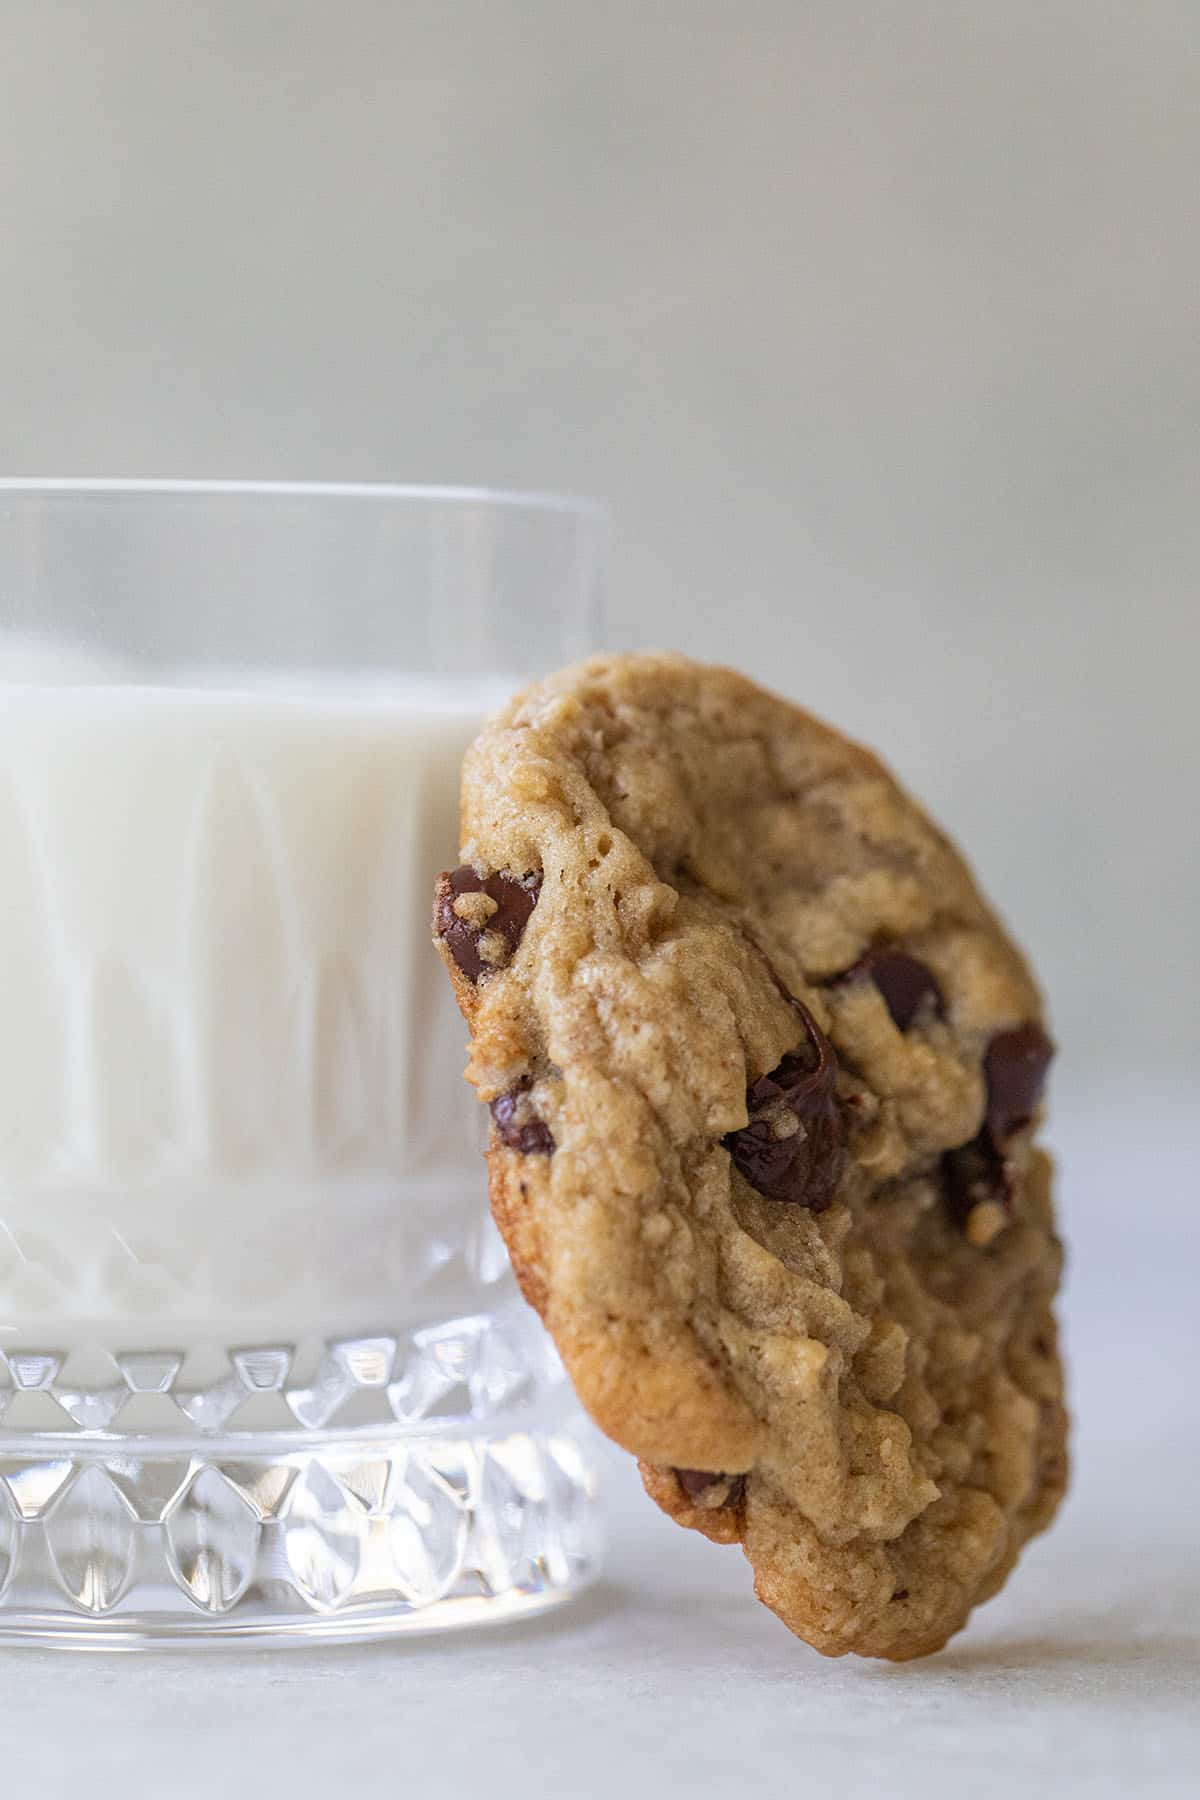 oatmeal chocolate chip cookie with milk